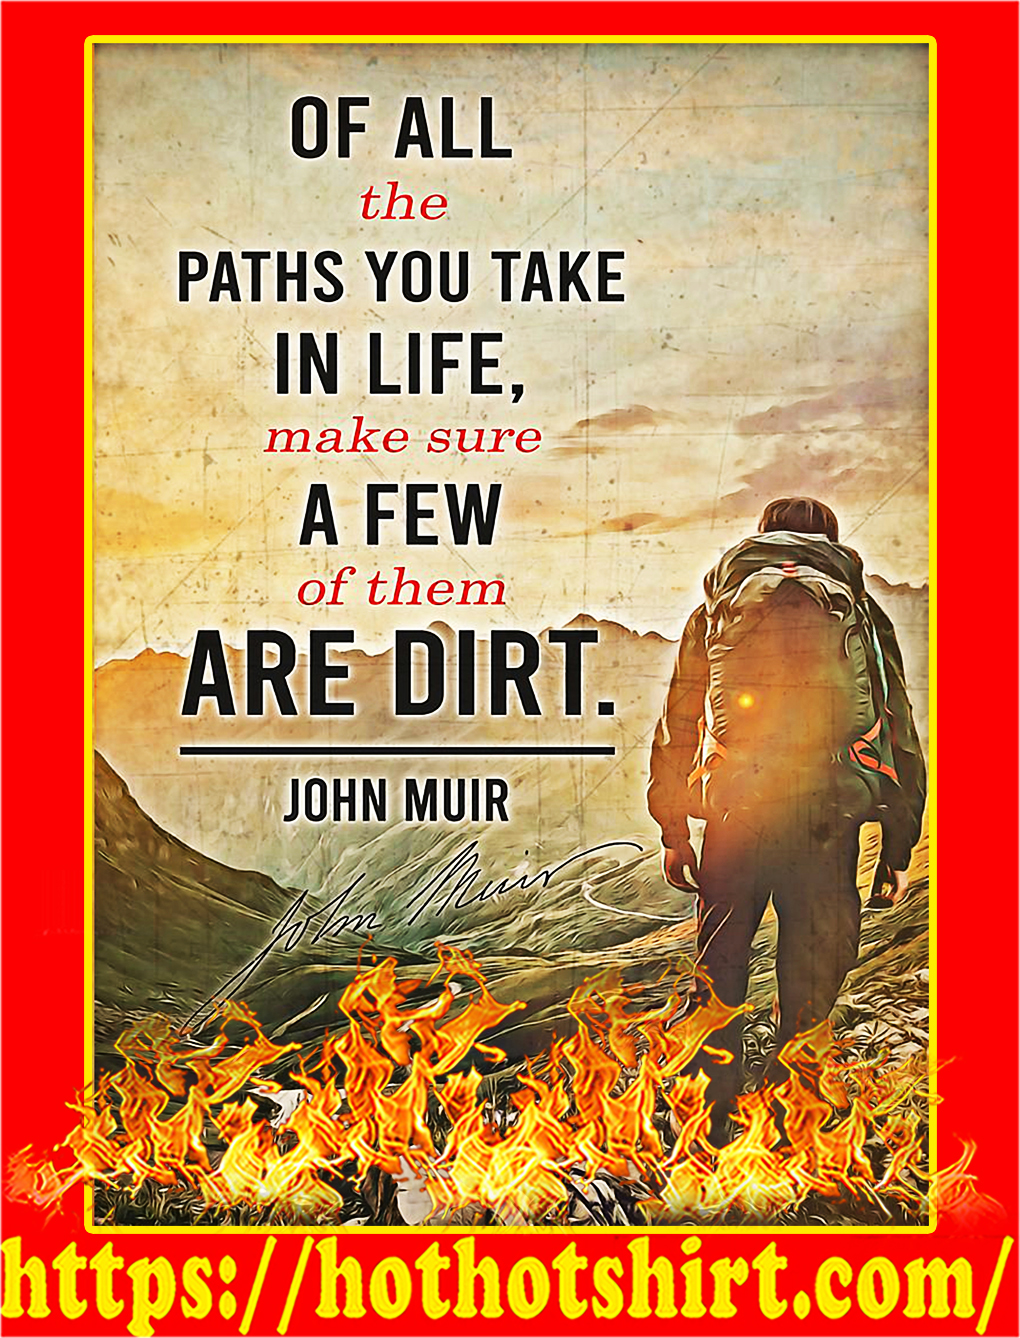 John muir Off all the paths you take in life poster - A4